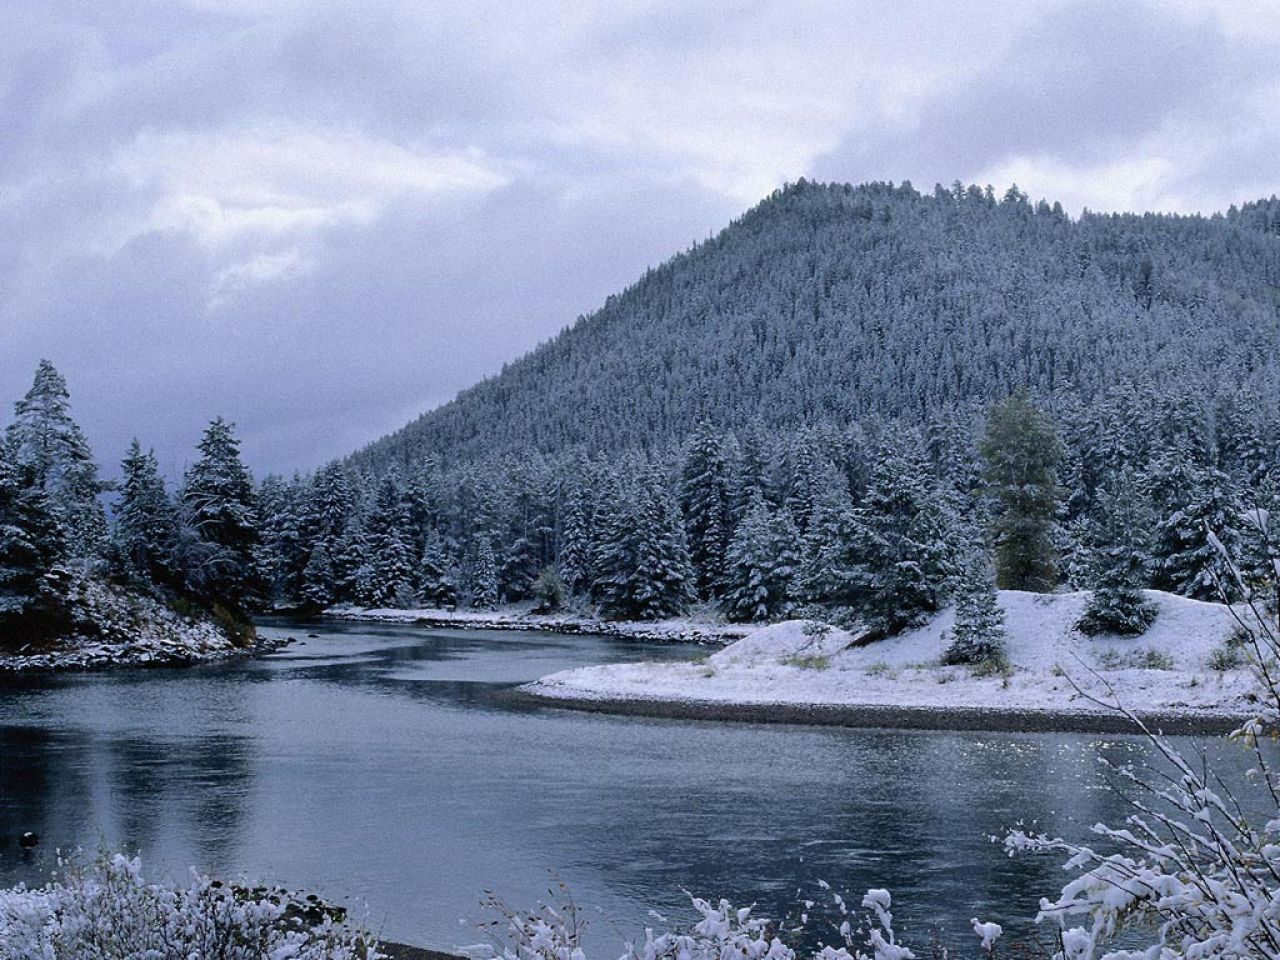 Snow Falling Background Wallpaper Paisajes Nevados M A R I A N